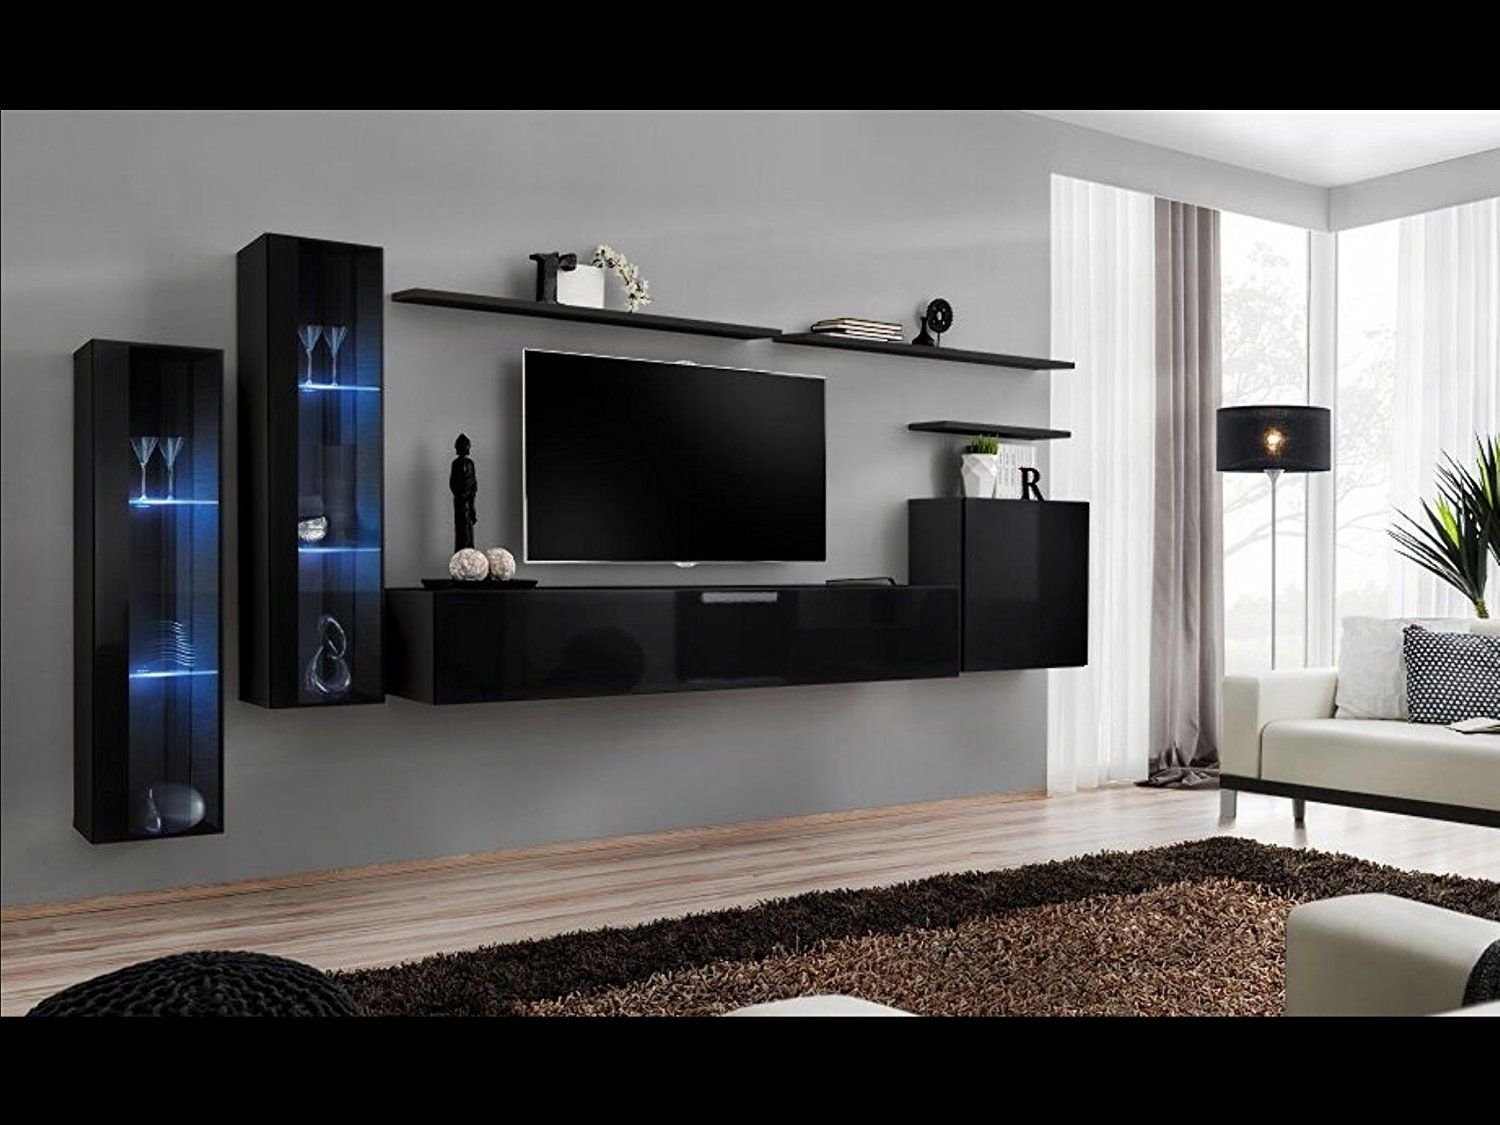 Delicieux Amazon.com: SHIFT XI   Seattle Collection High Gloss Living Room Furniture    Floating